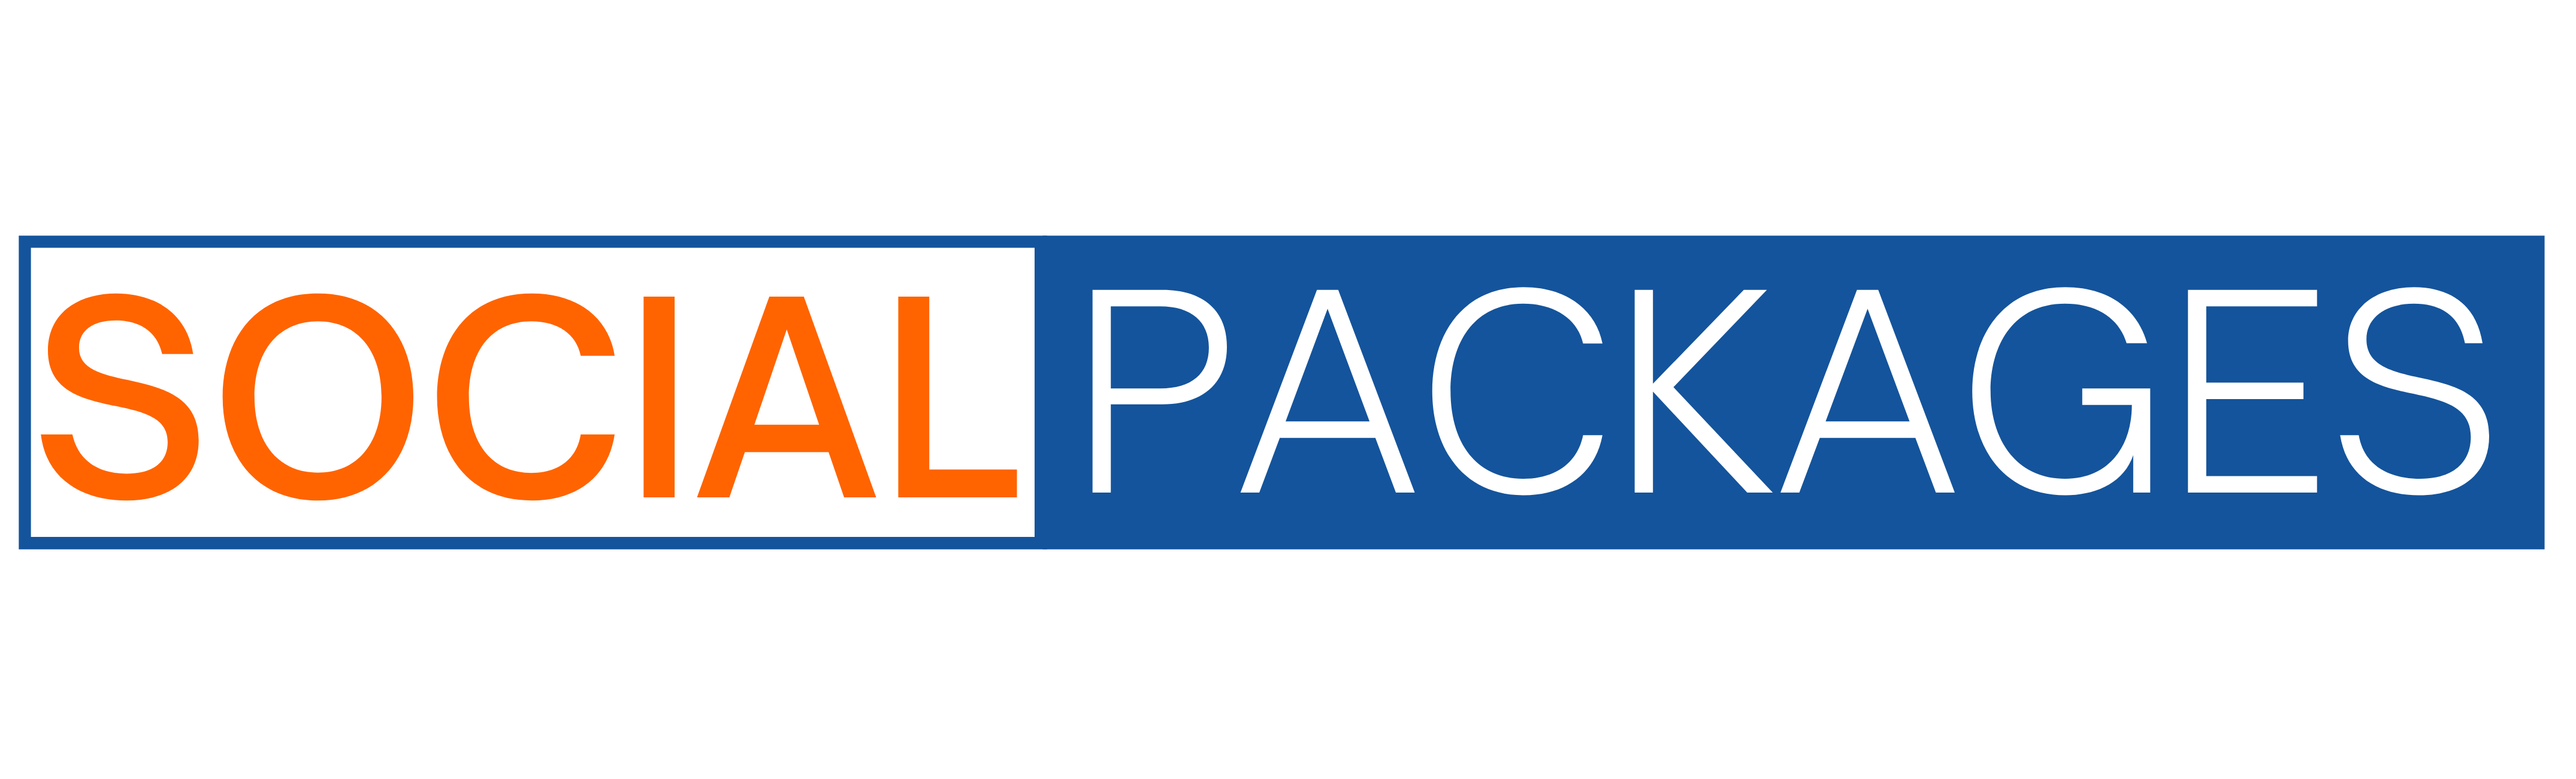 SocialPackages.net